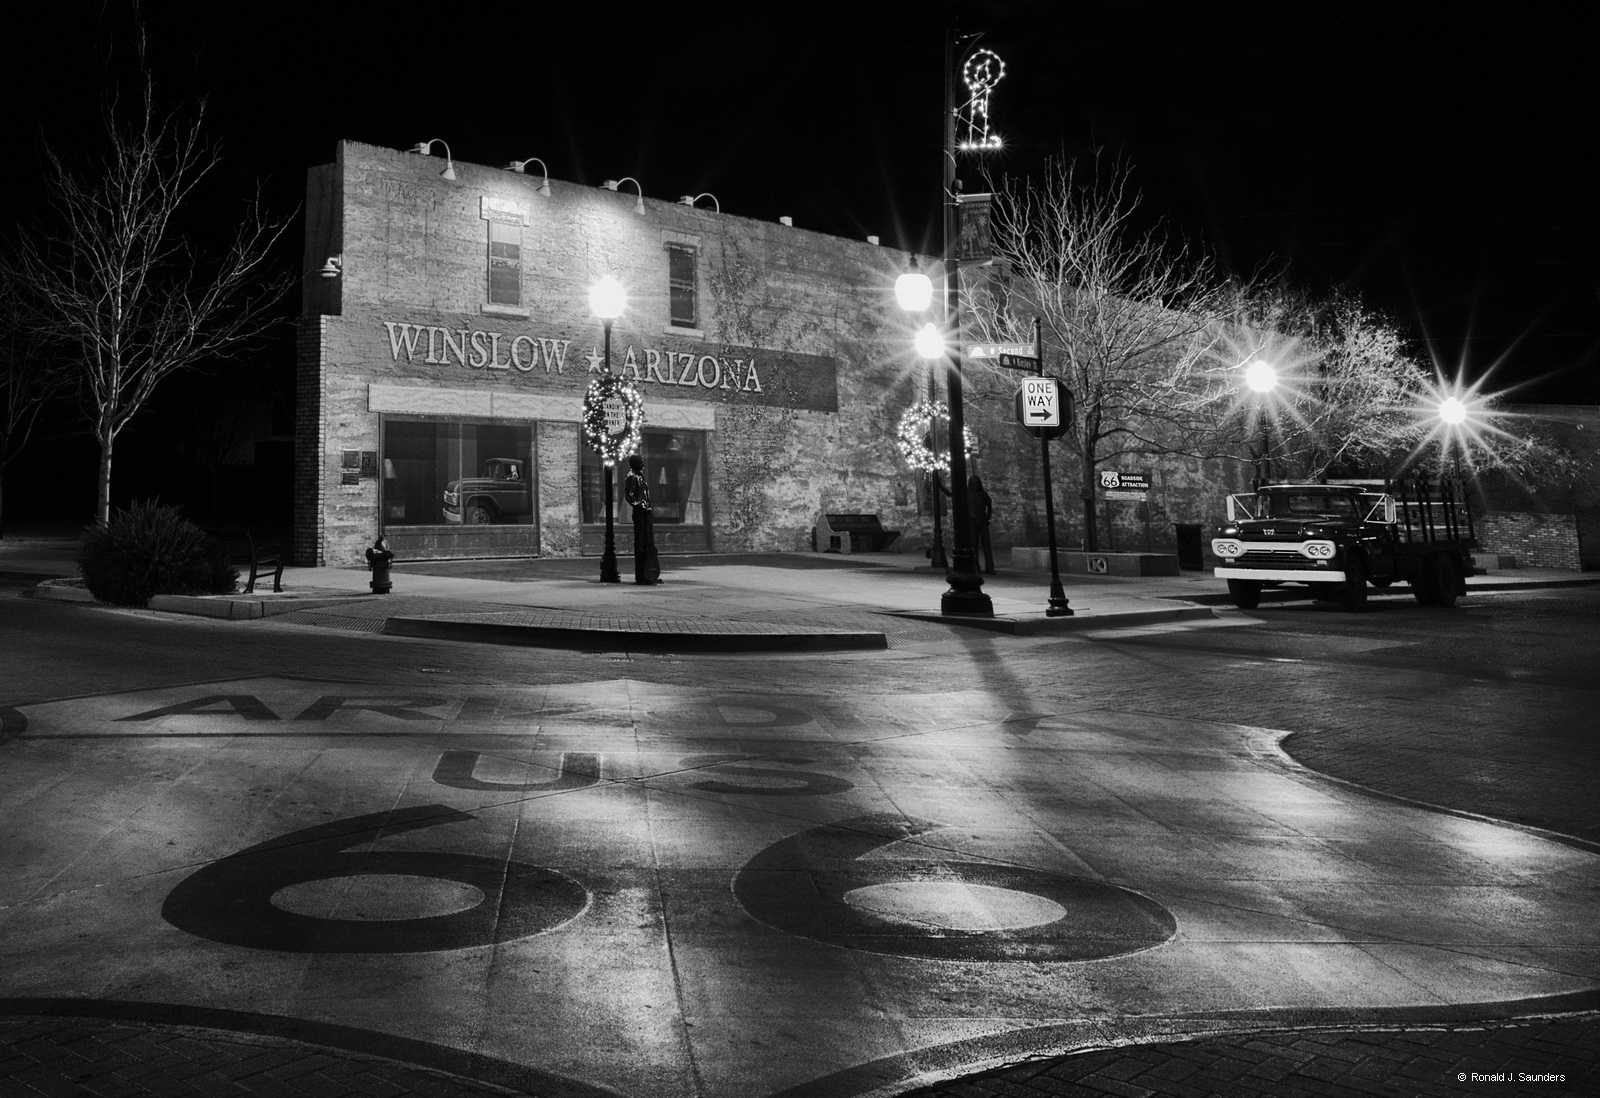 Winslow, Arizona, standing on the corner, eagles, route 66, ron, saunders, ronald, ronald j saunders, landscape, photography, ronaldsaunders, ronaldsaunders.com, photo